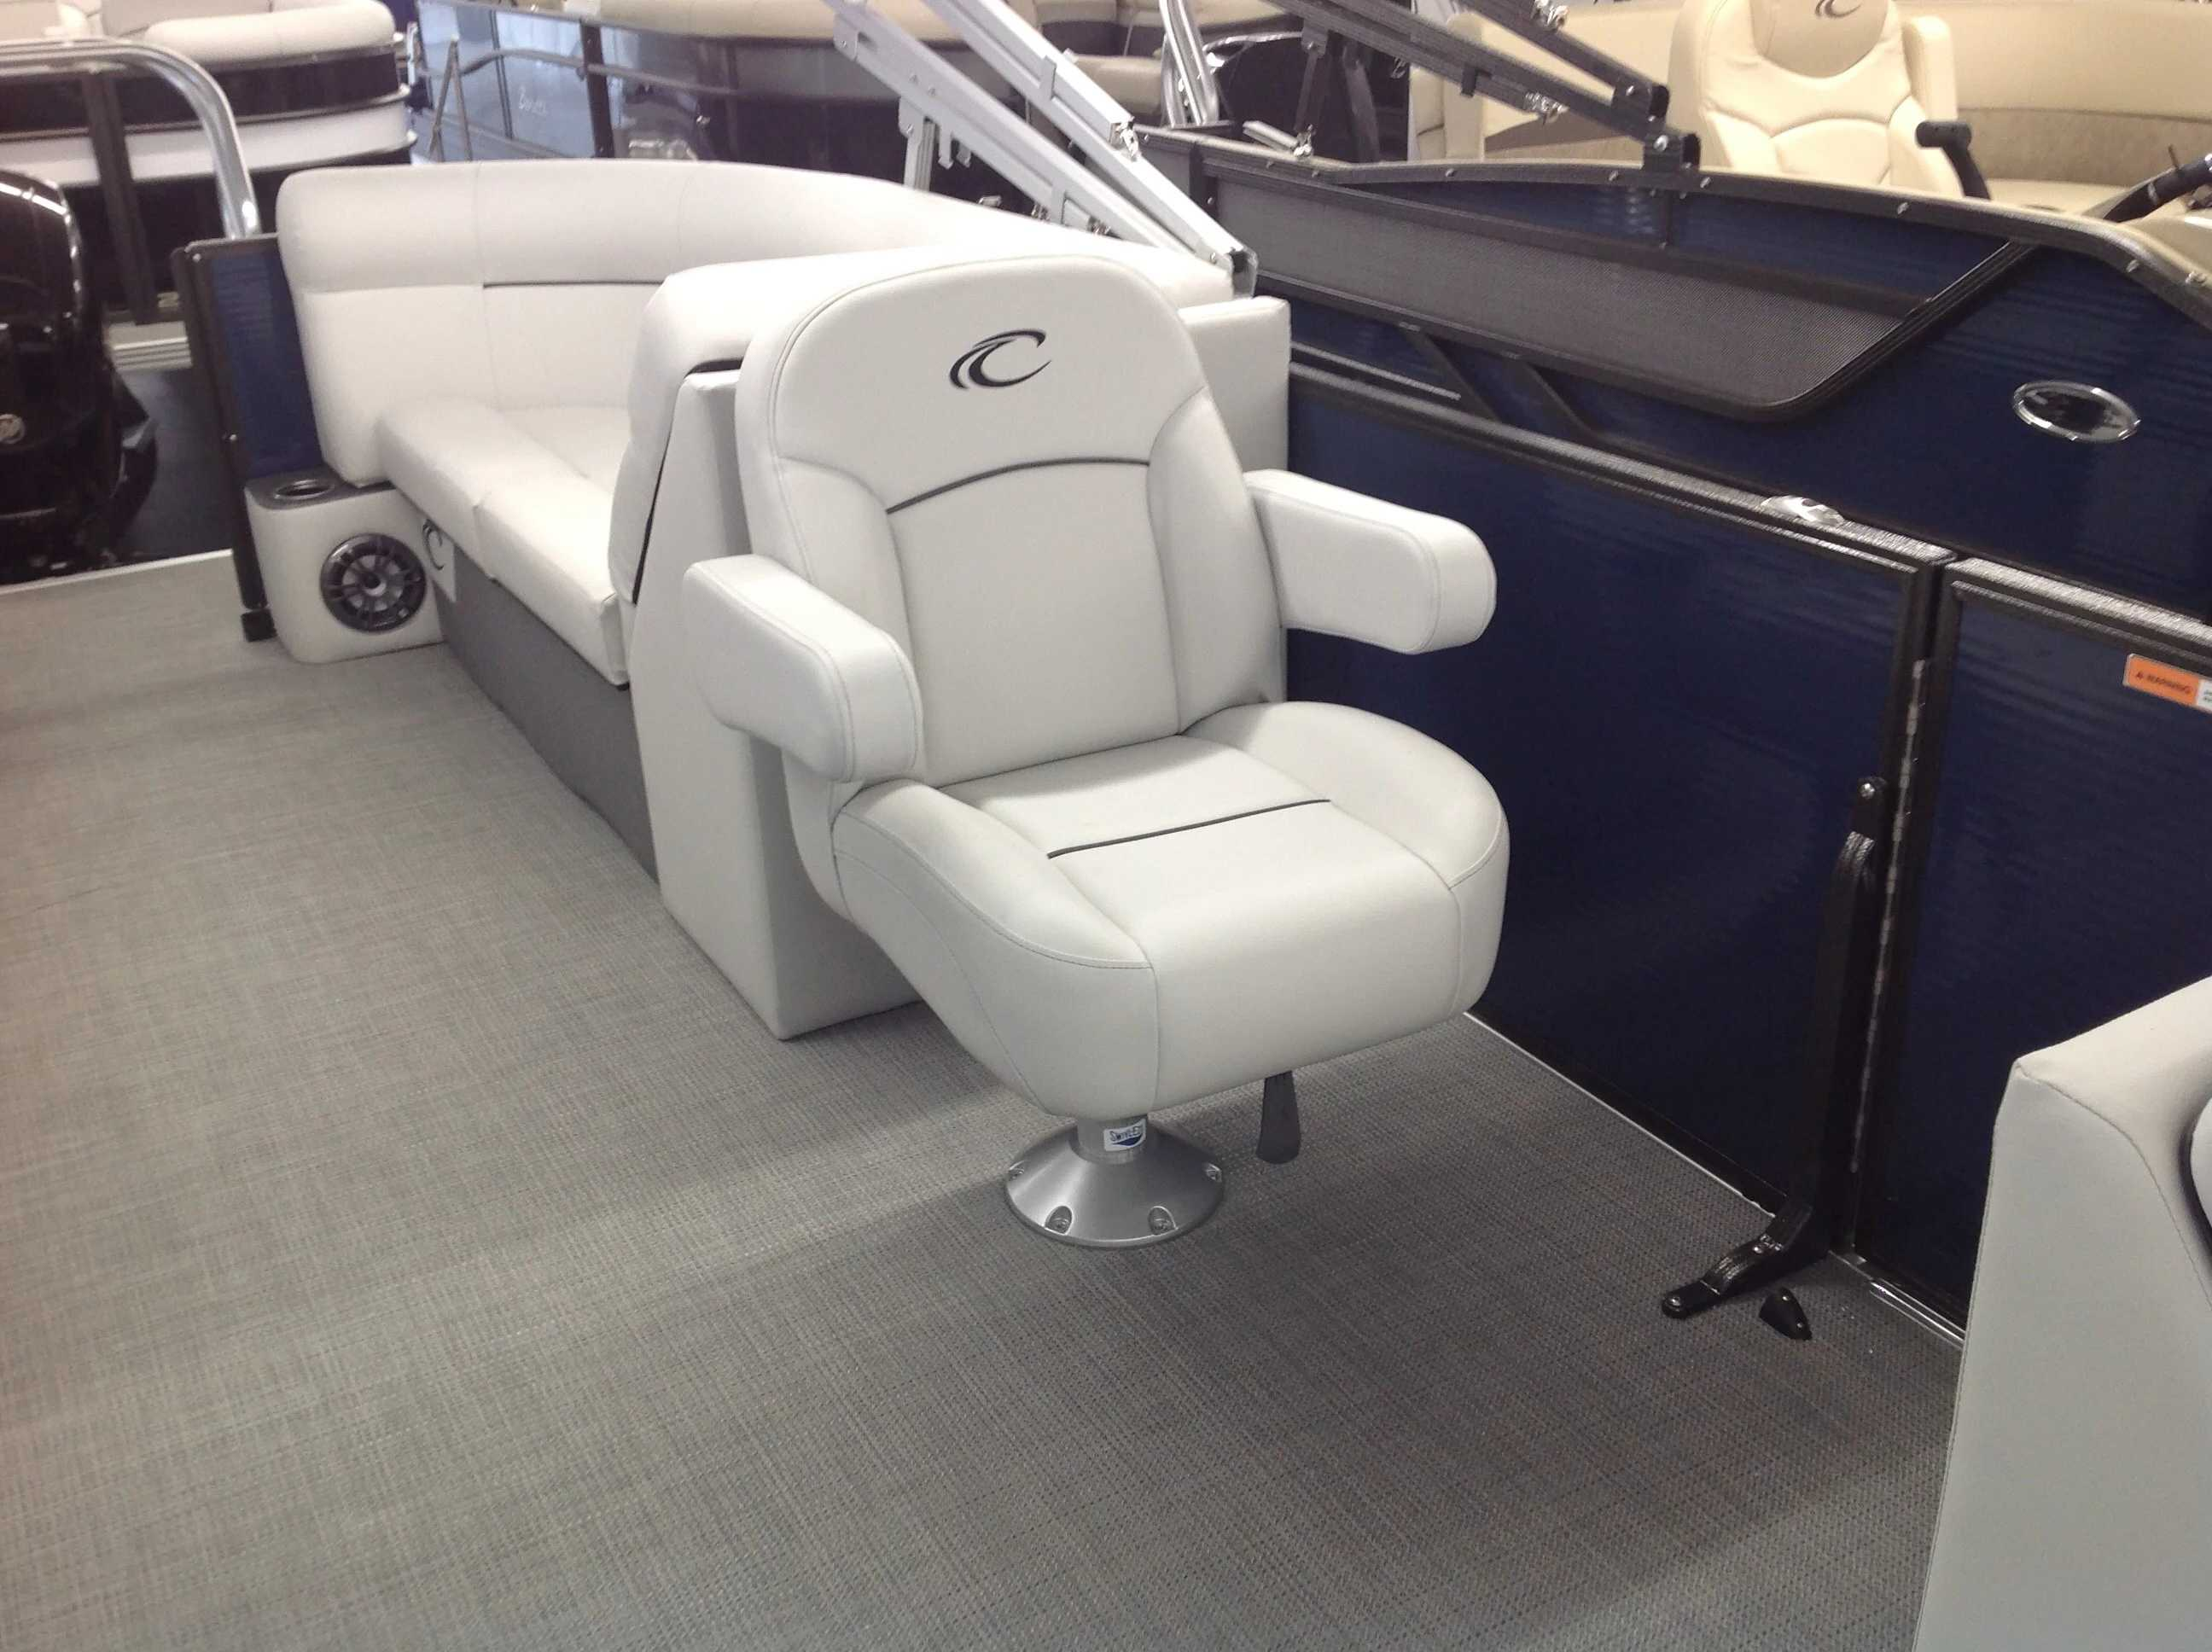 2021 Crest boat for sale, model of the boat is Cl Lx 220slc & Image # 8 of 13